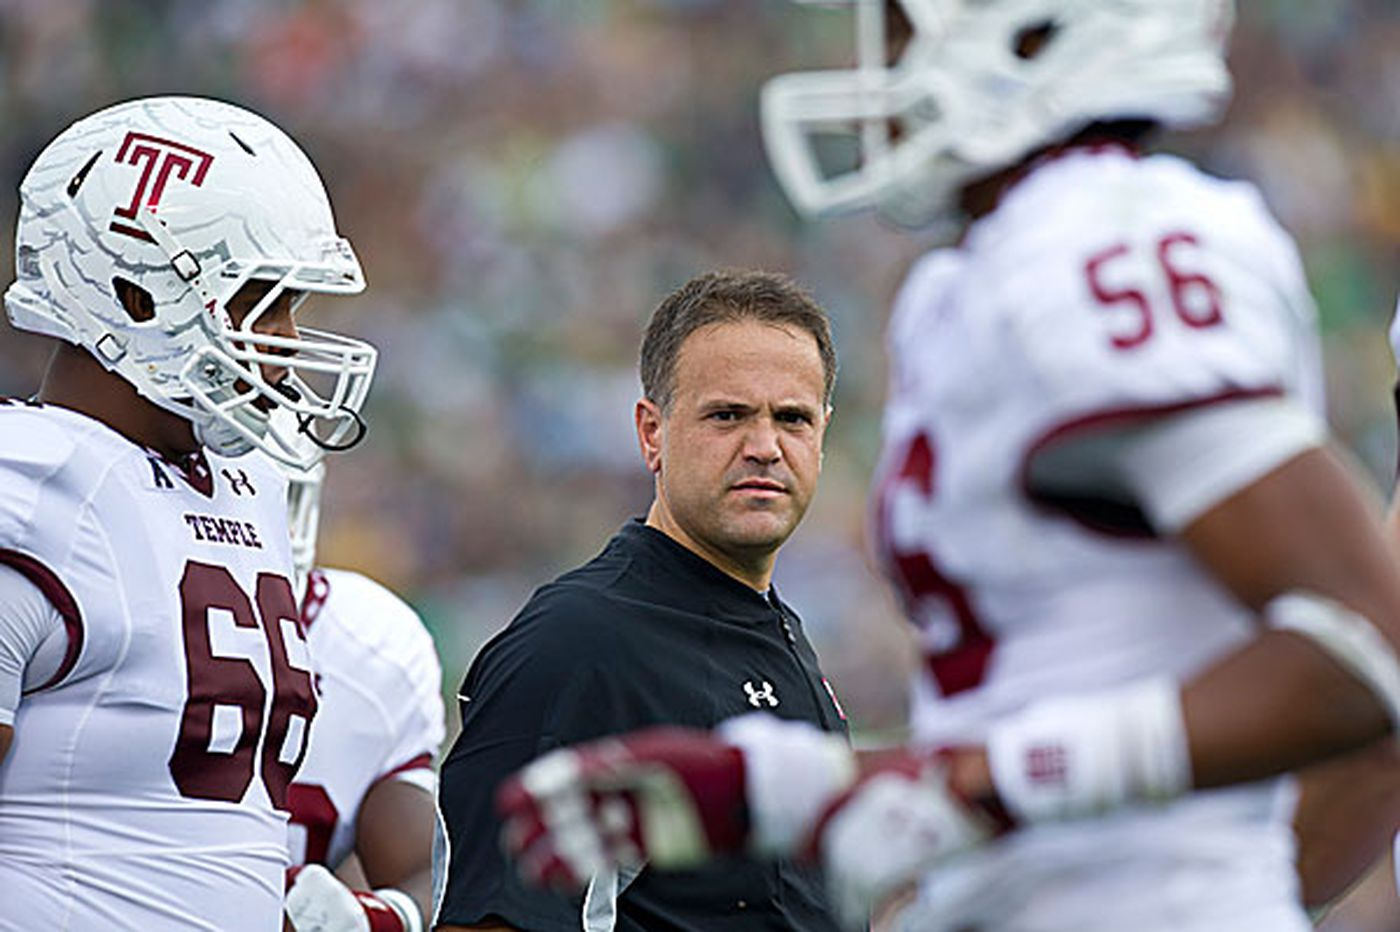 Temple remains winless